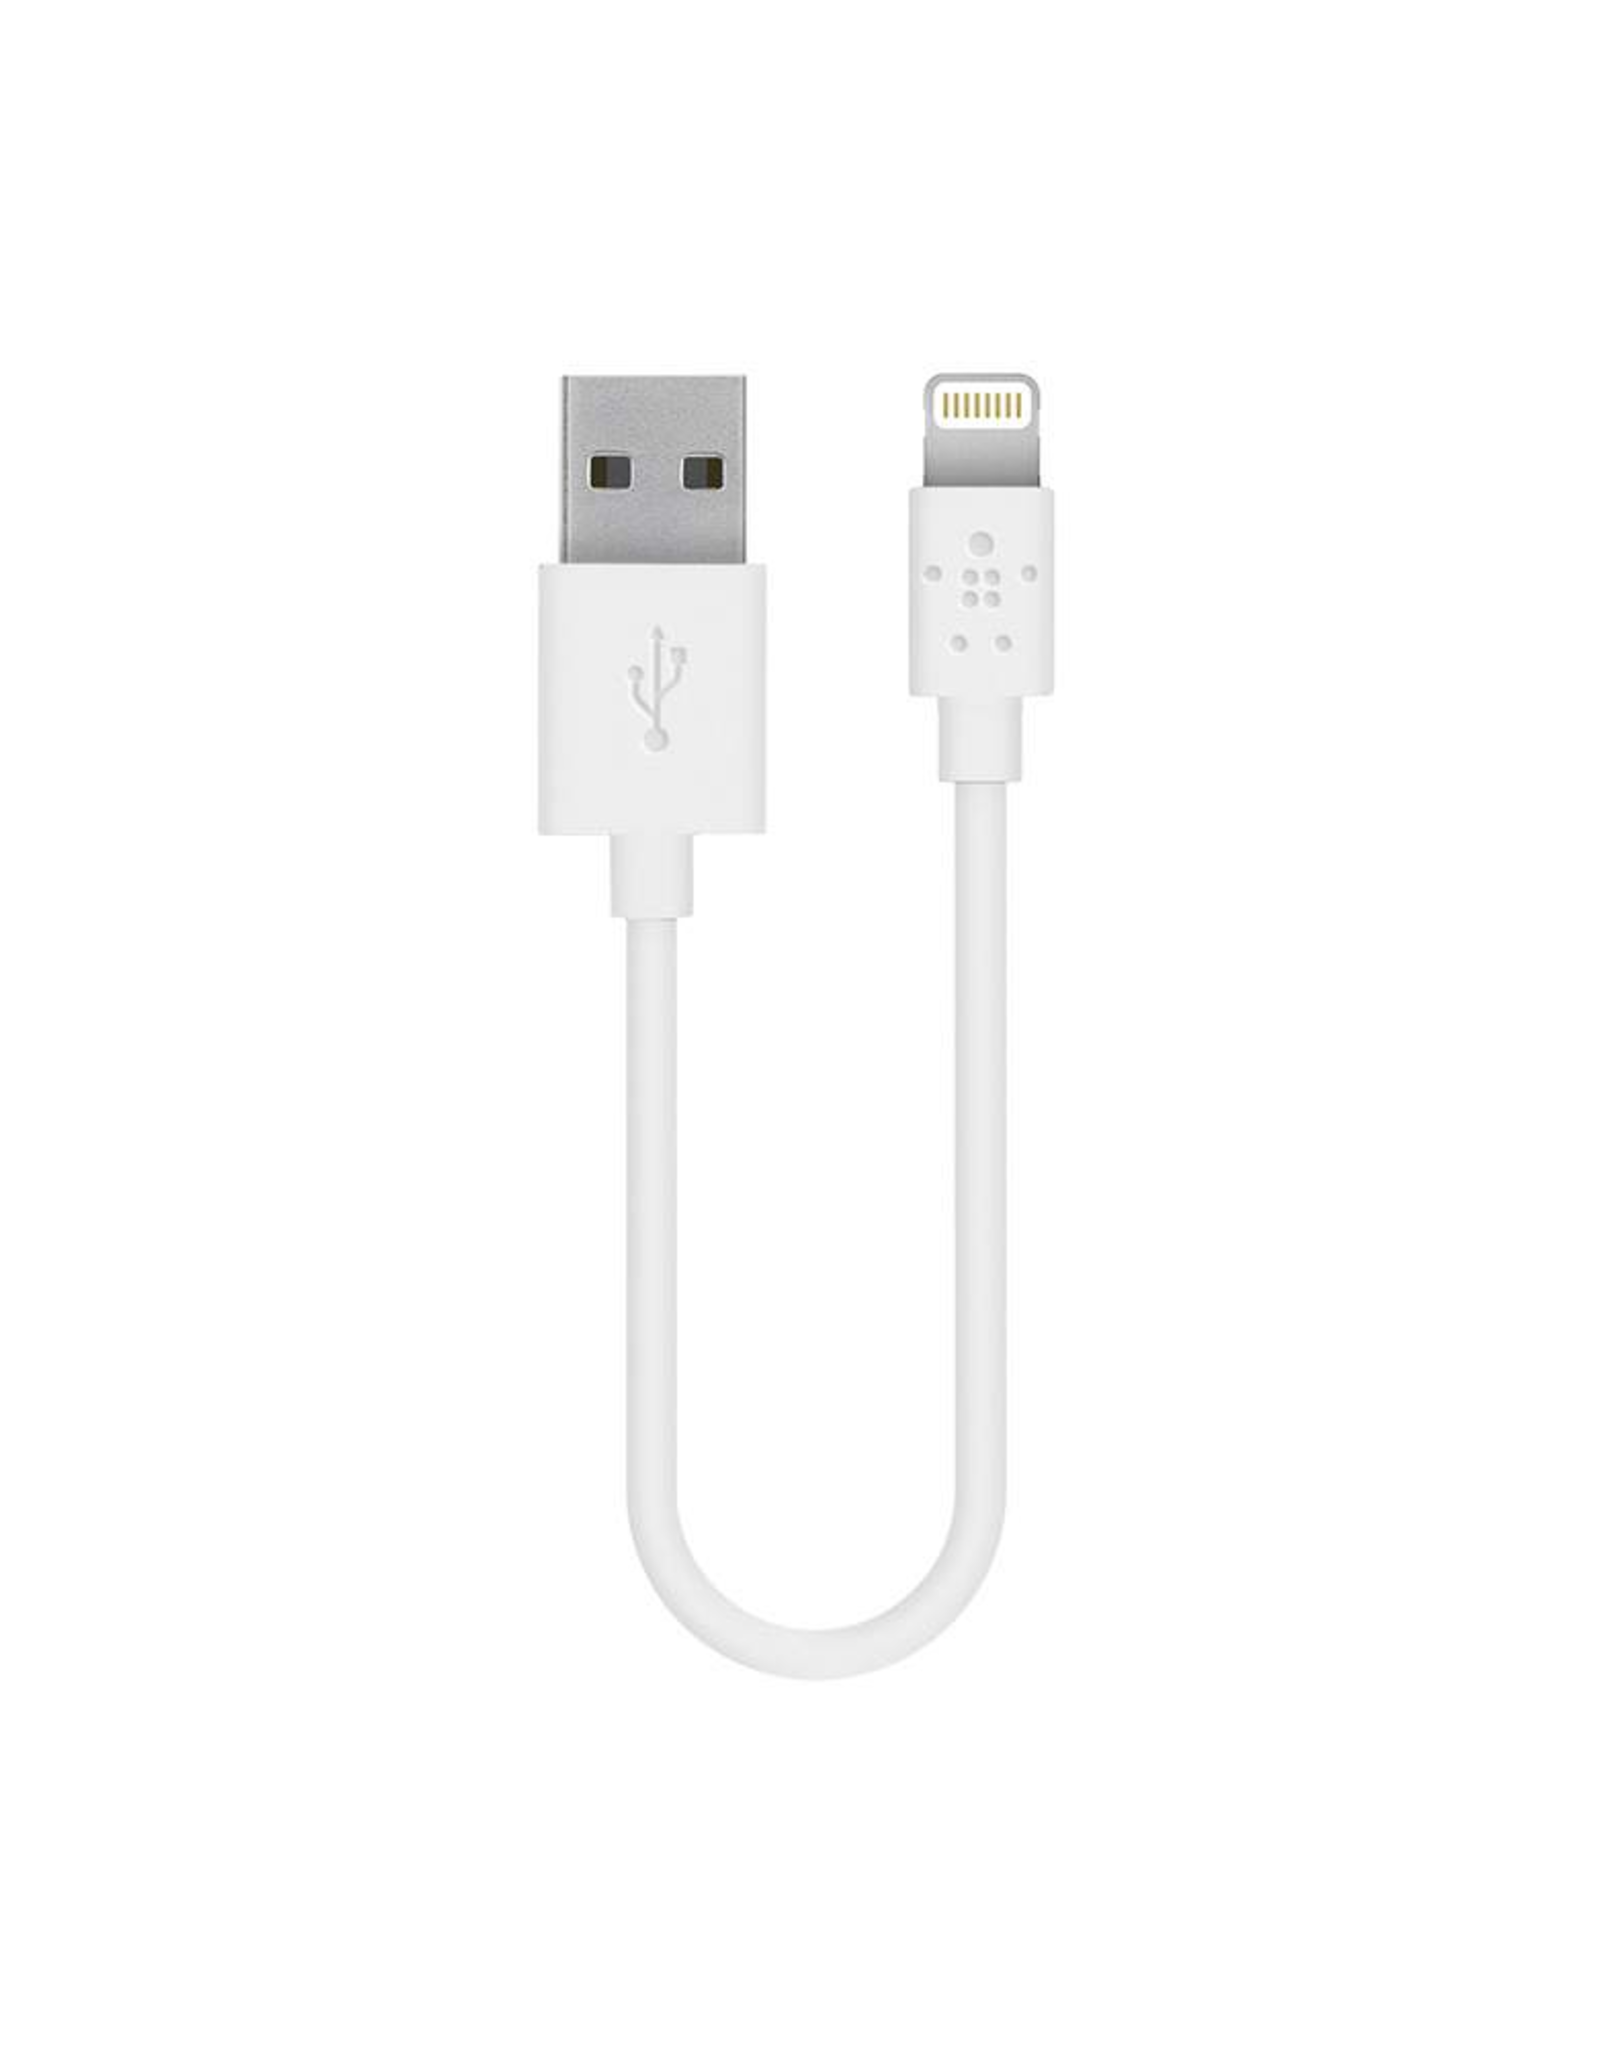 Belkin MIXIT↑™ Lightning to USB ChargeSync Cable